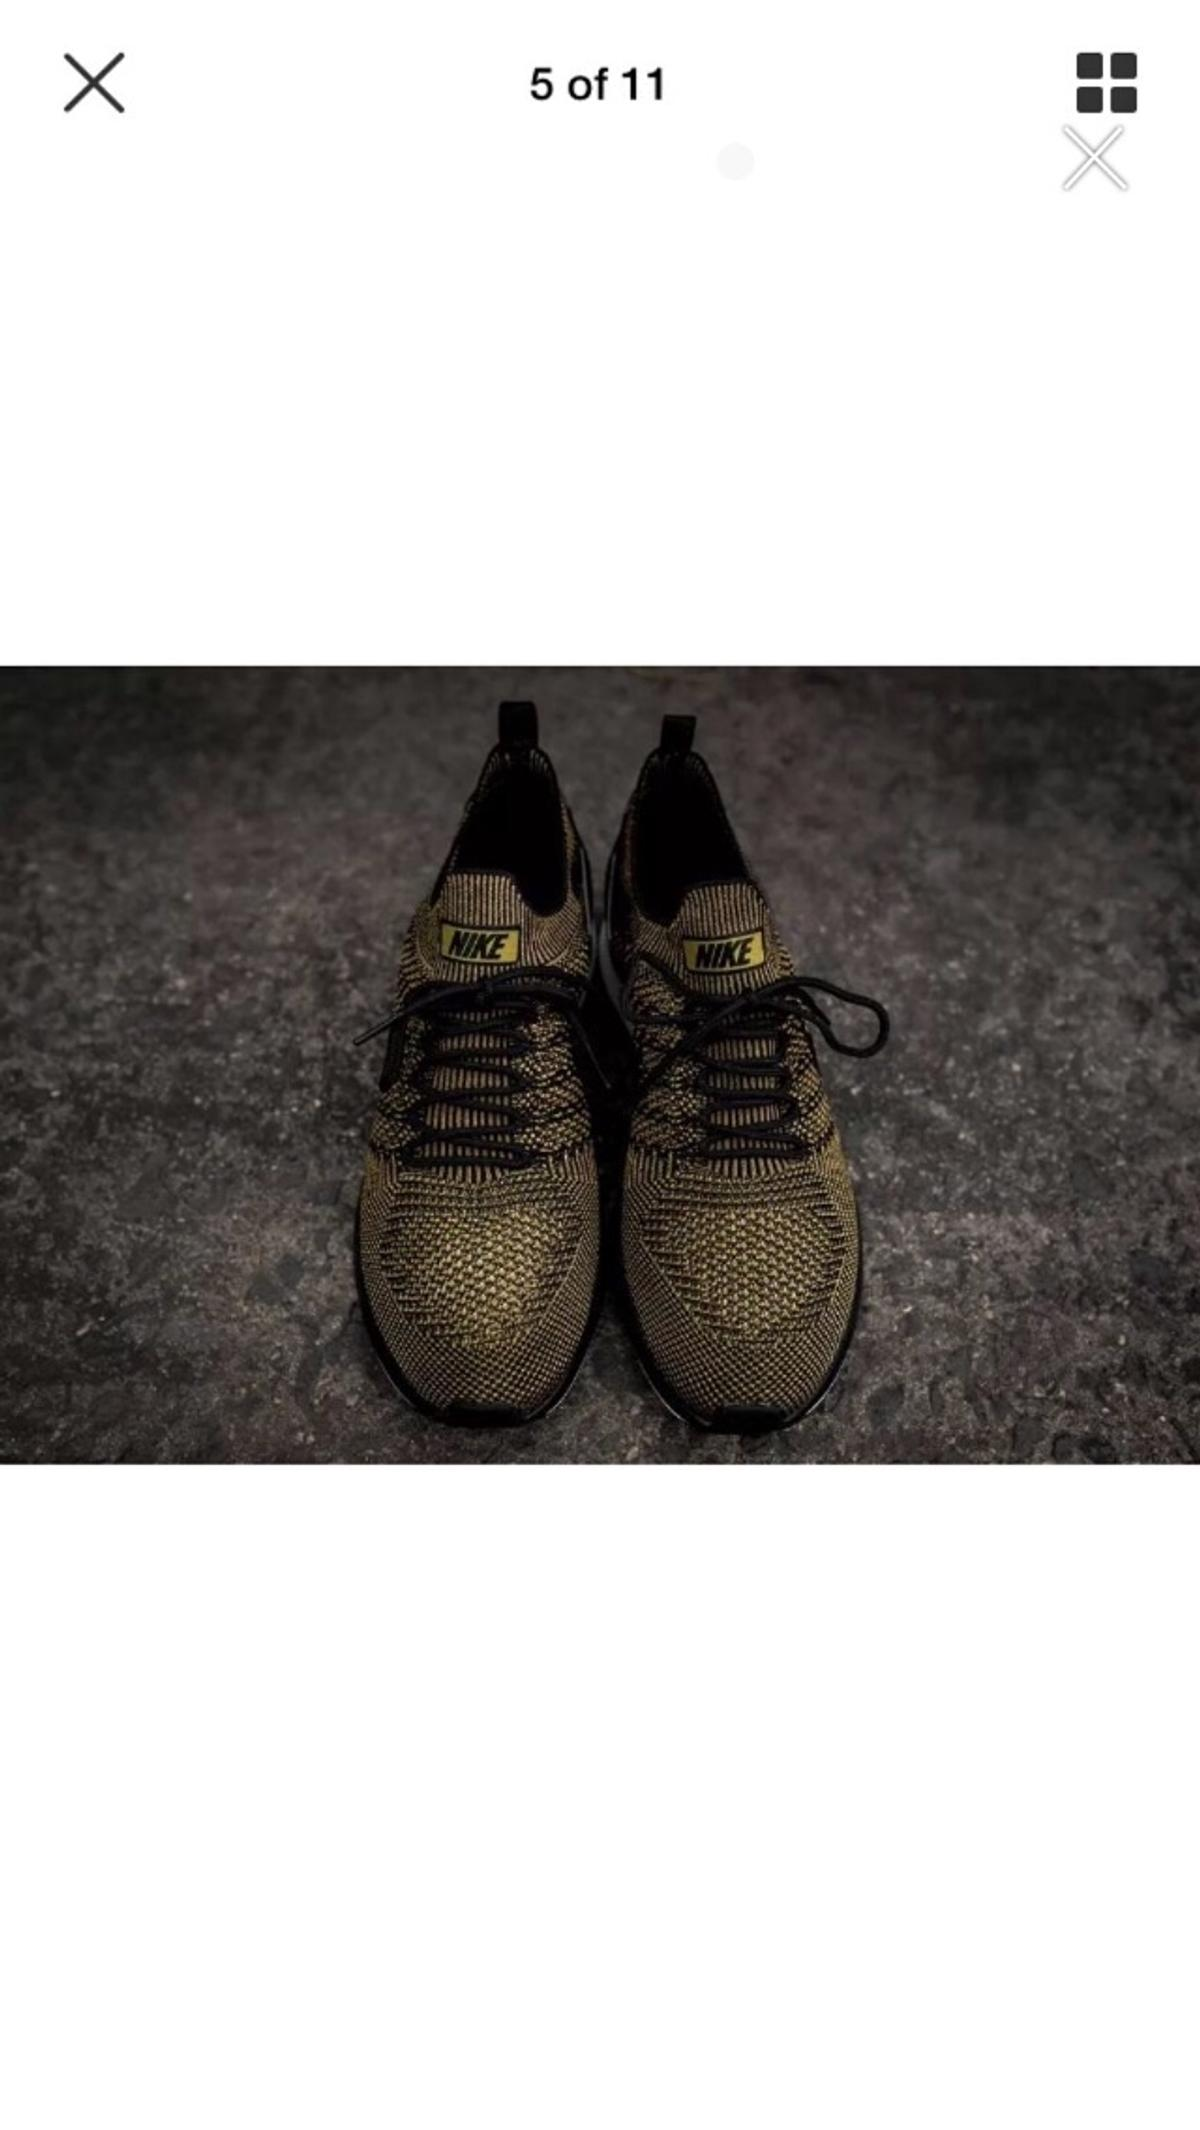 brand new 76c63 a64b4 nike air zoom mariah flyknit racer size 6 Uk in E9 London for £50.00 ...